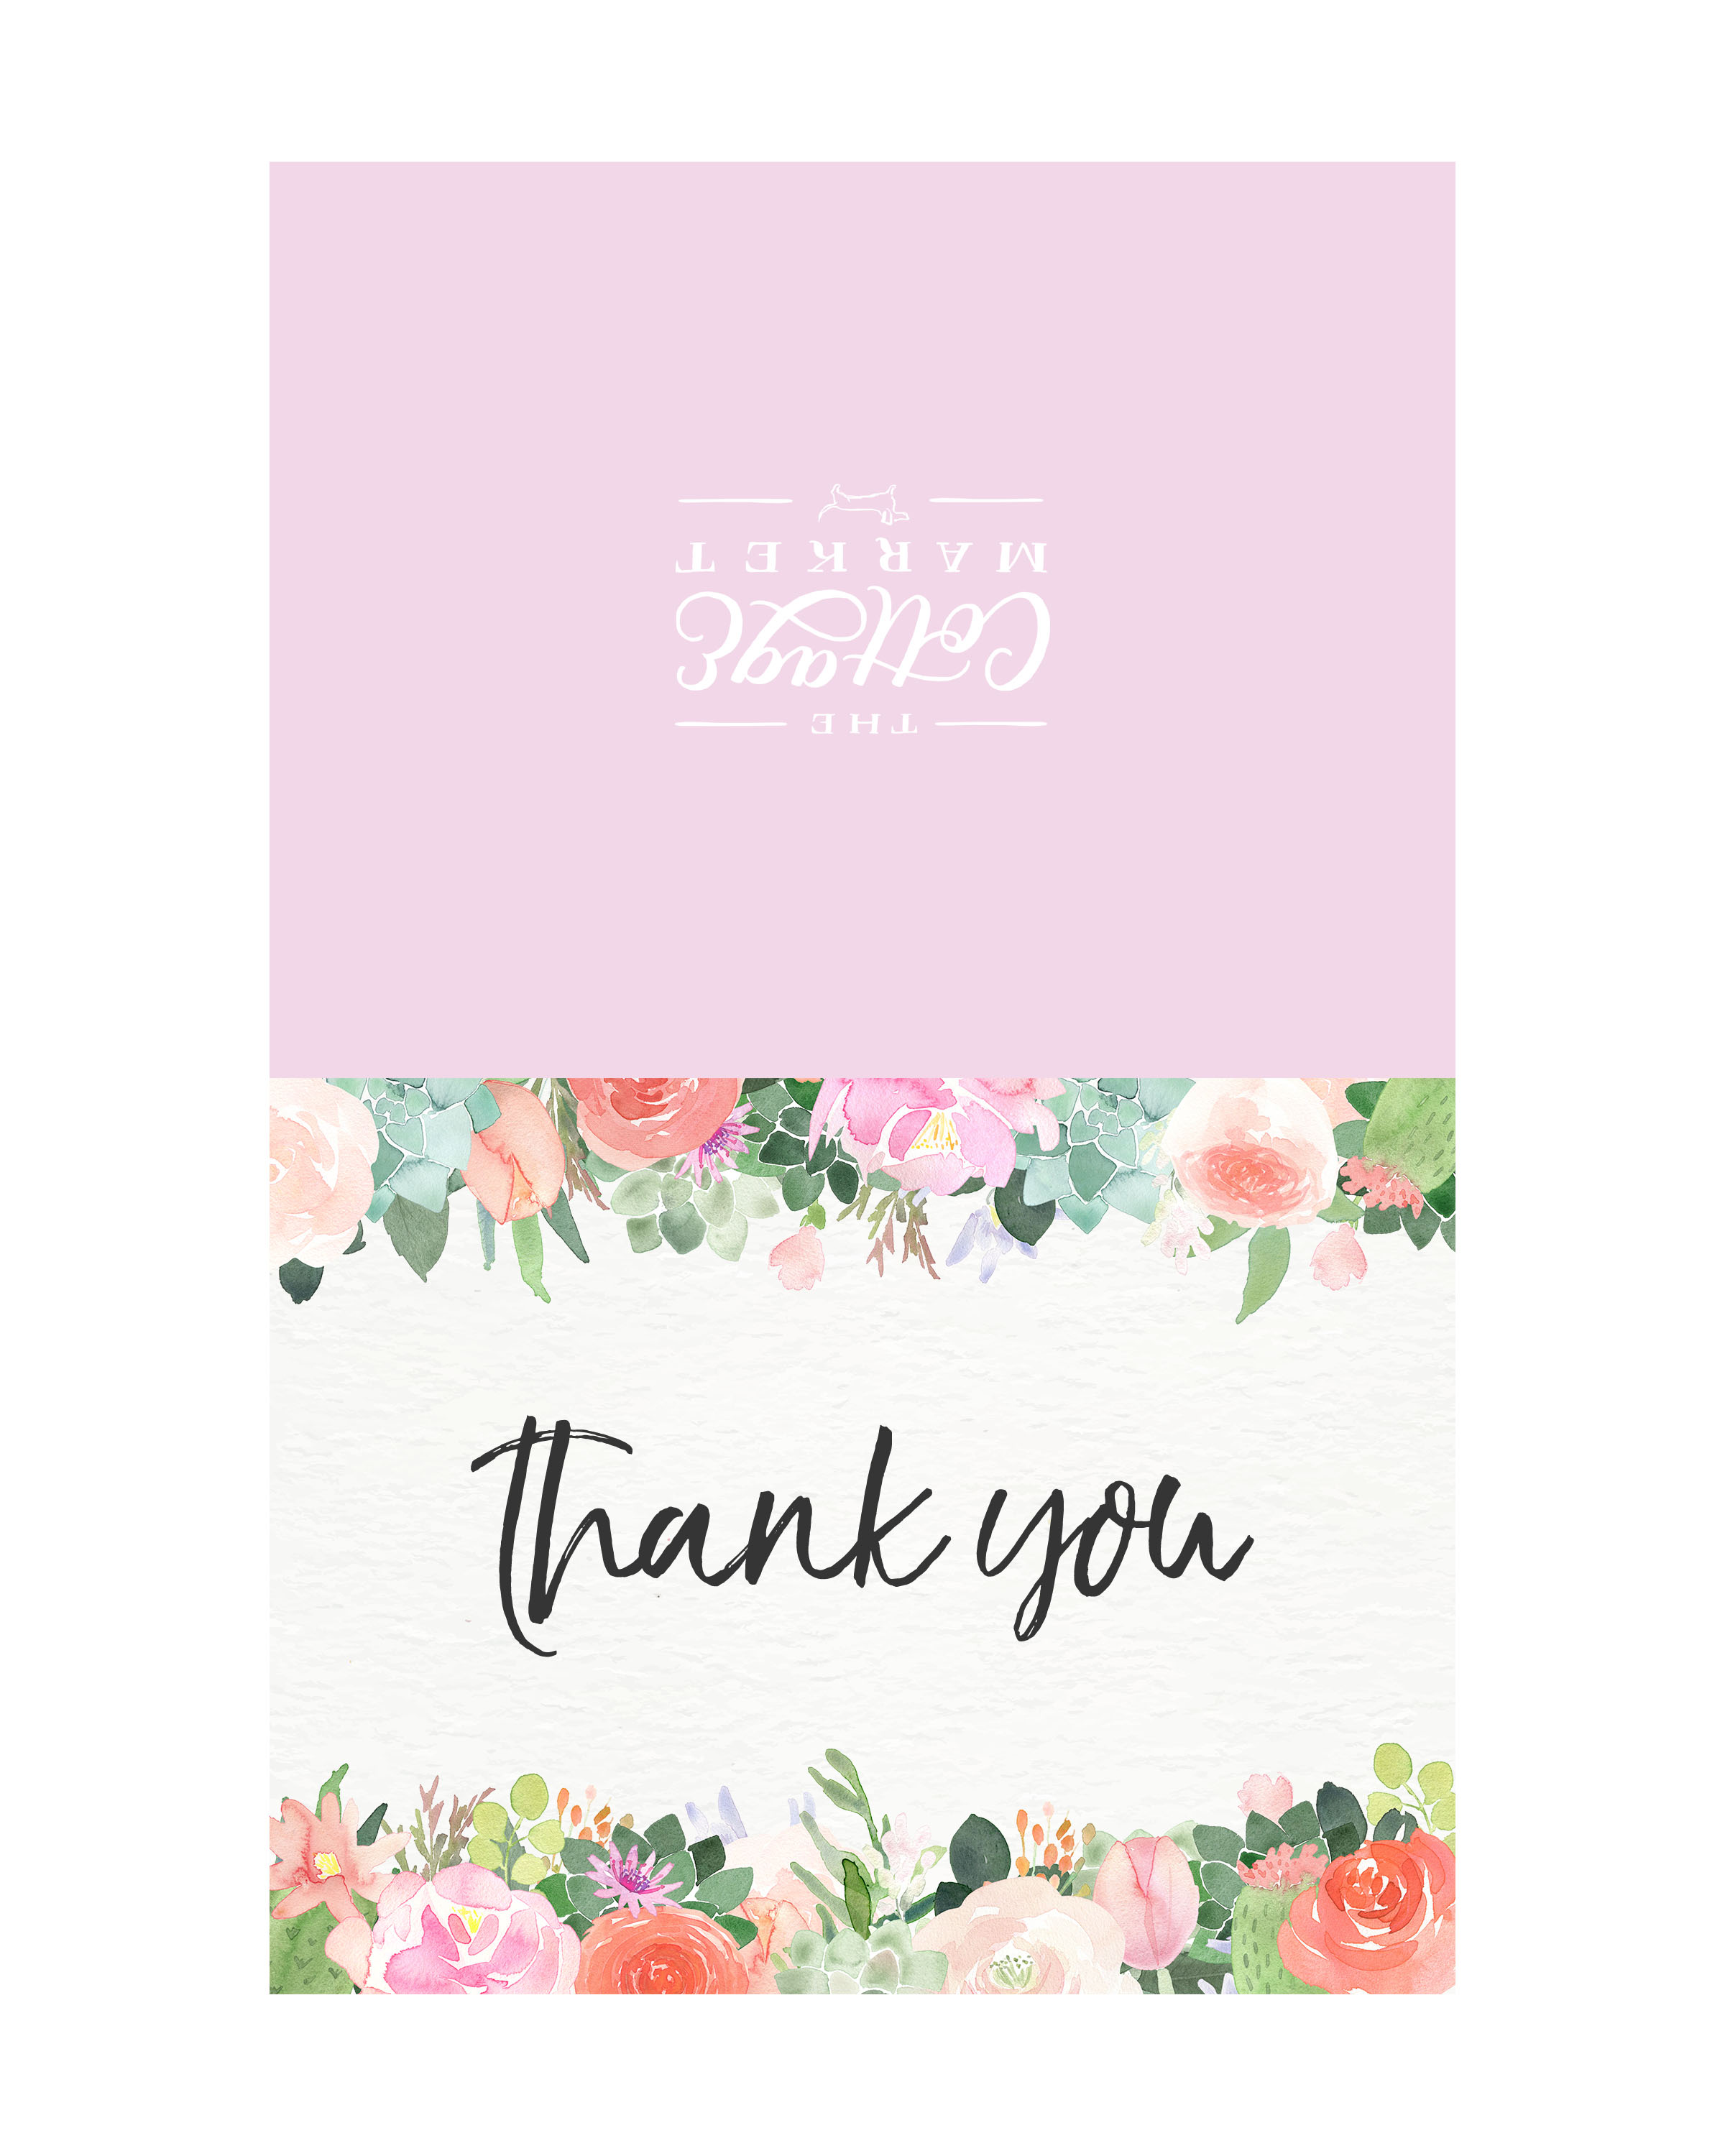 This is a graphic of Printable Thank You Cards with diy